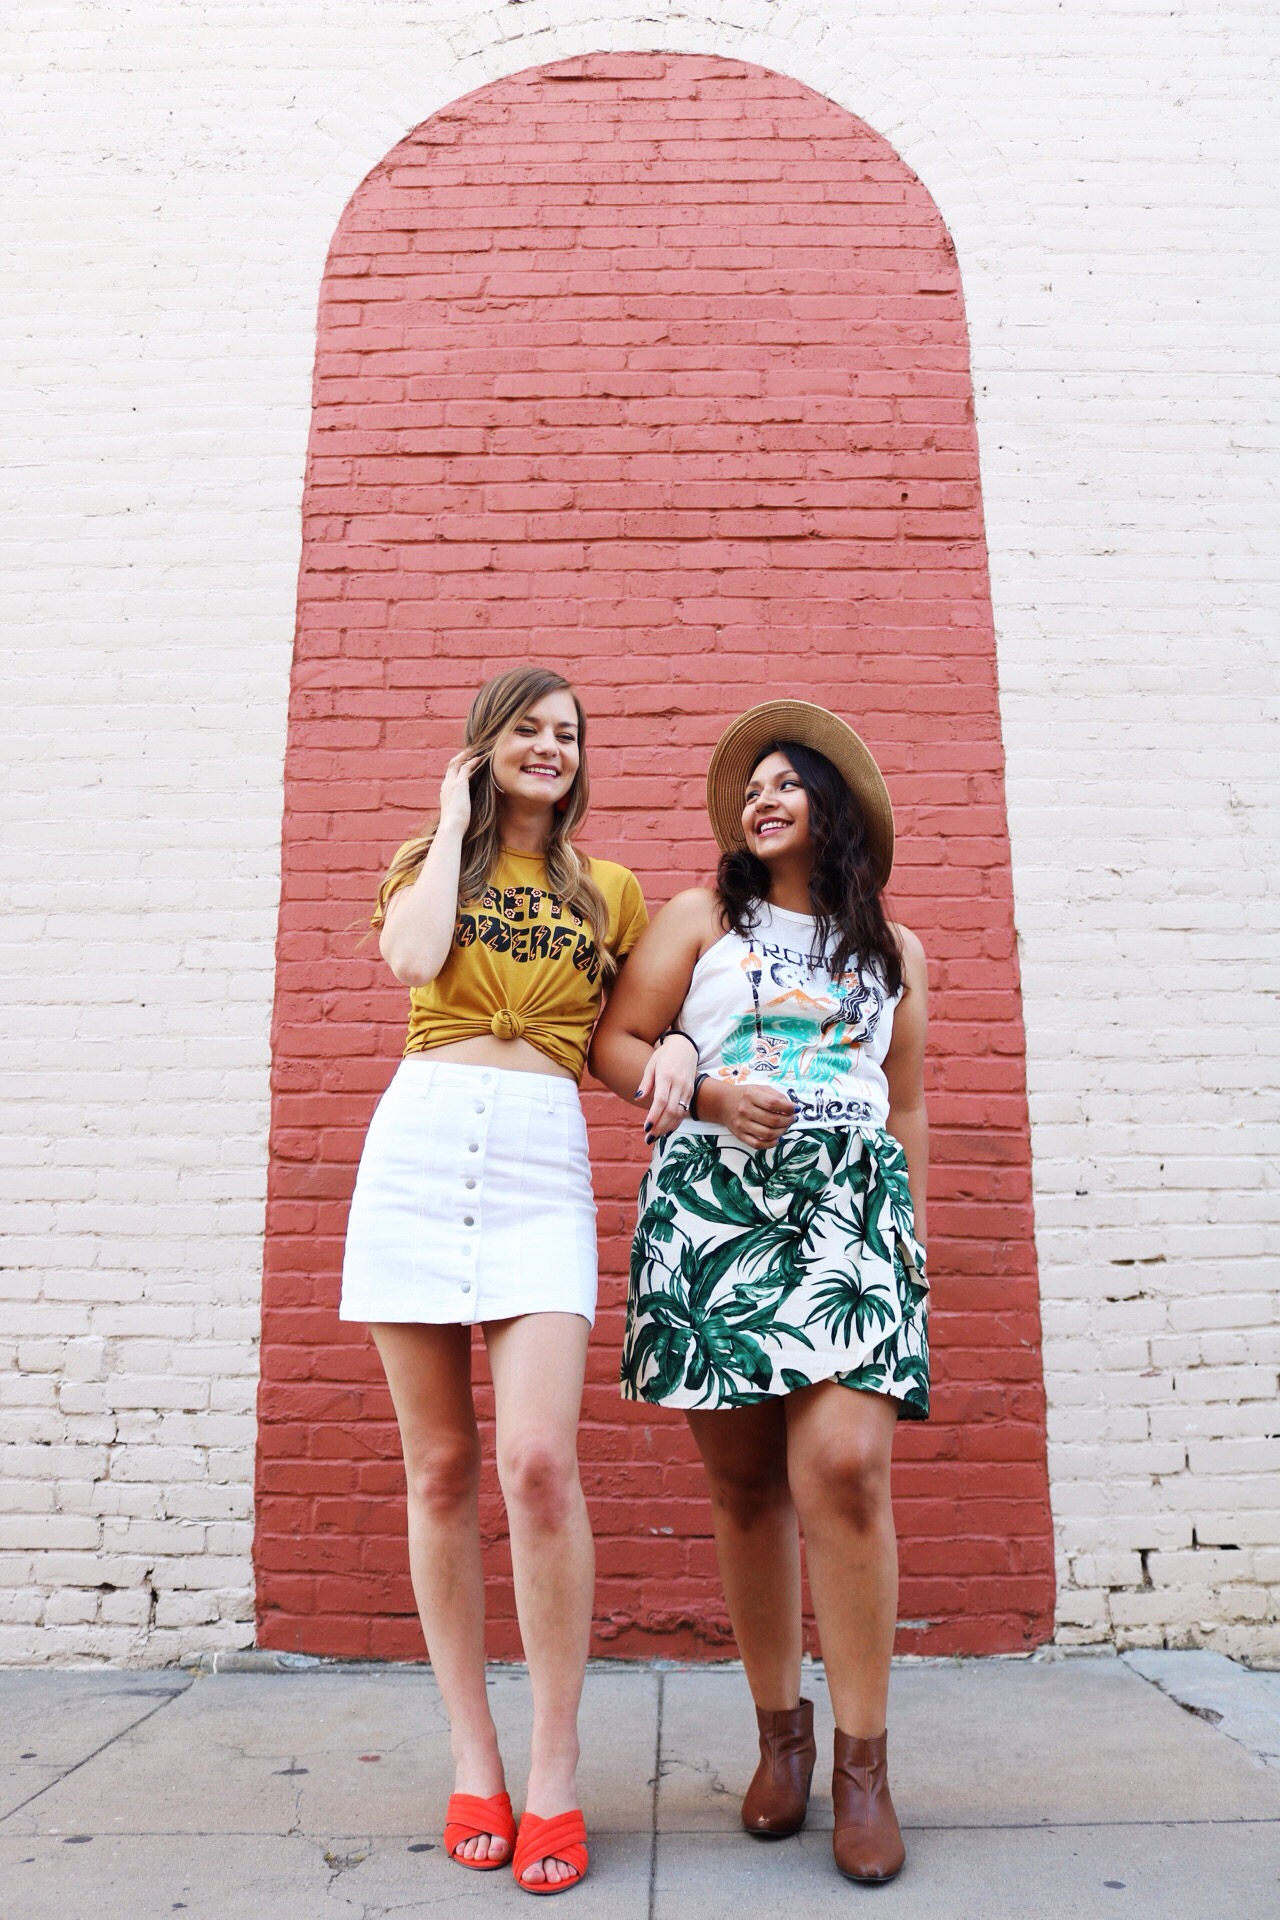 Summer fashion inspired by feminist company Dazey L.A. Mini skirts and and graphic tees